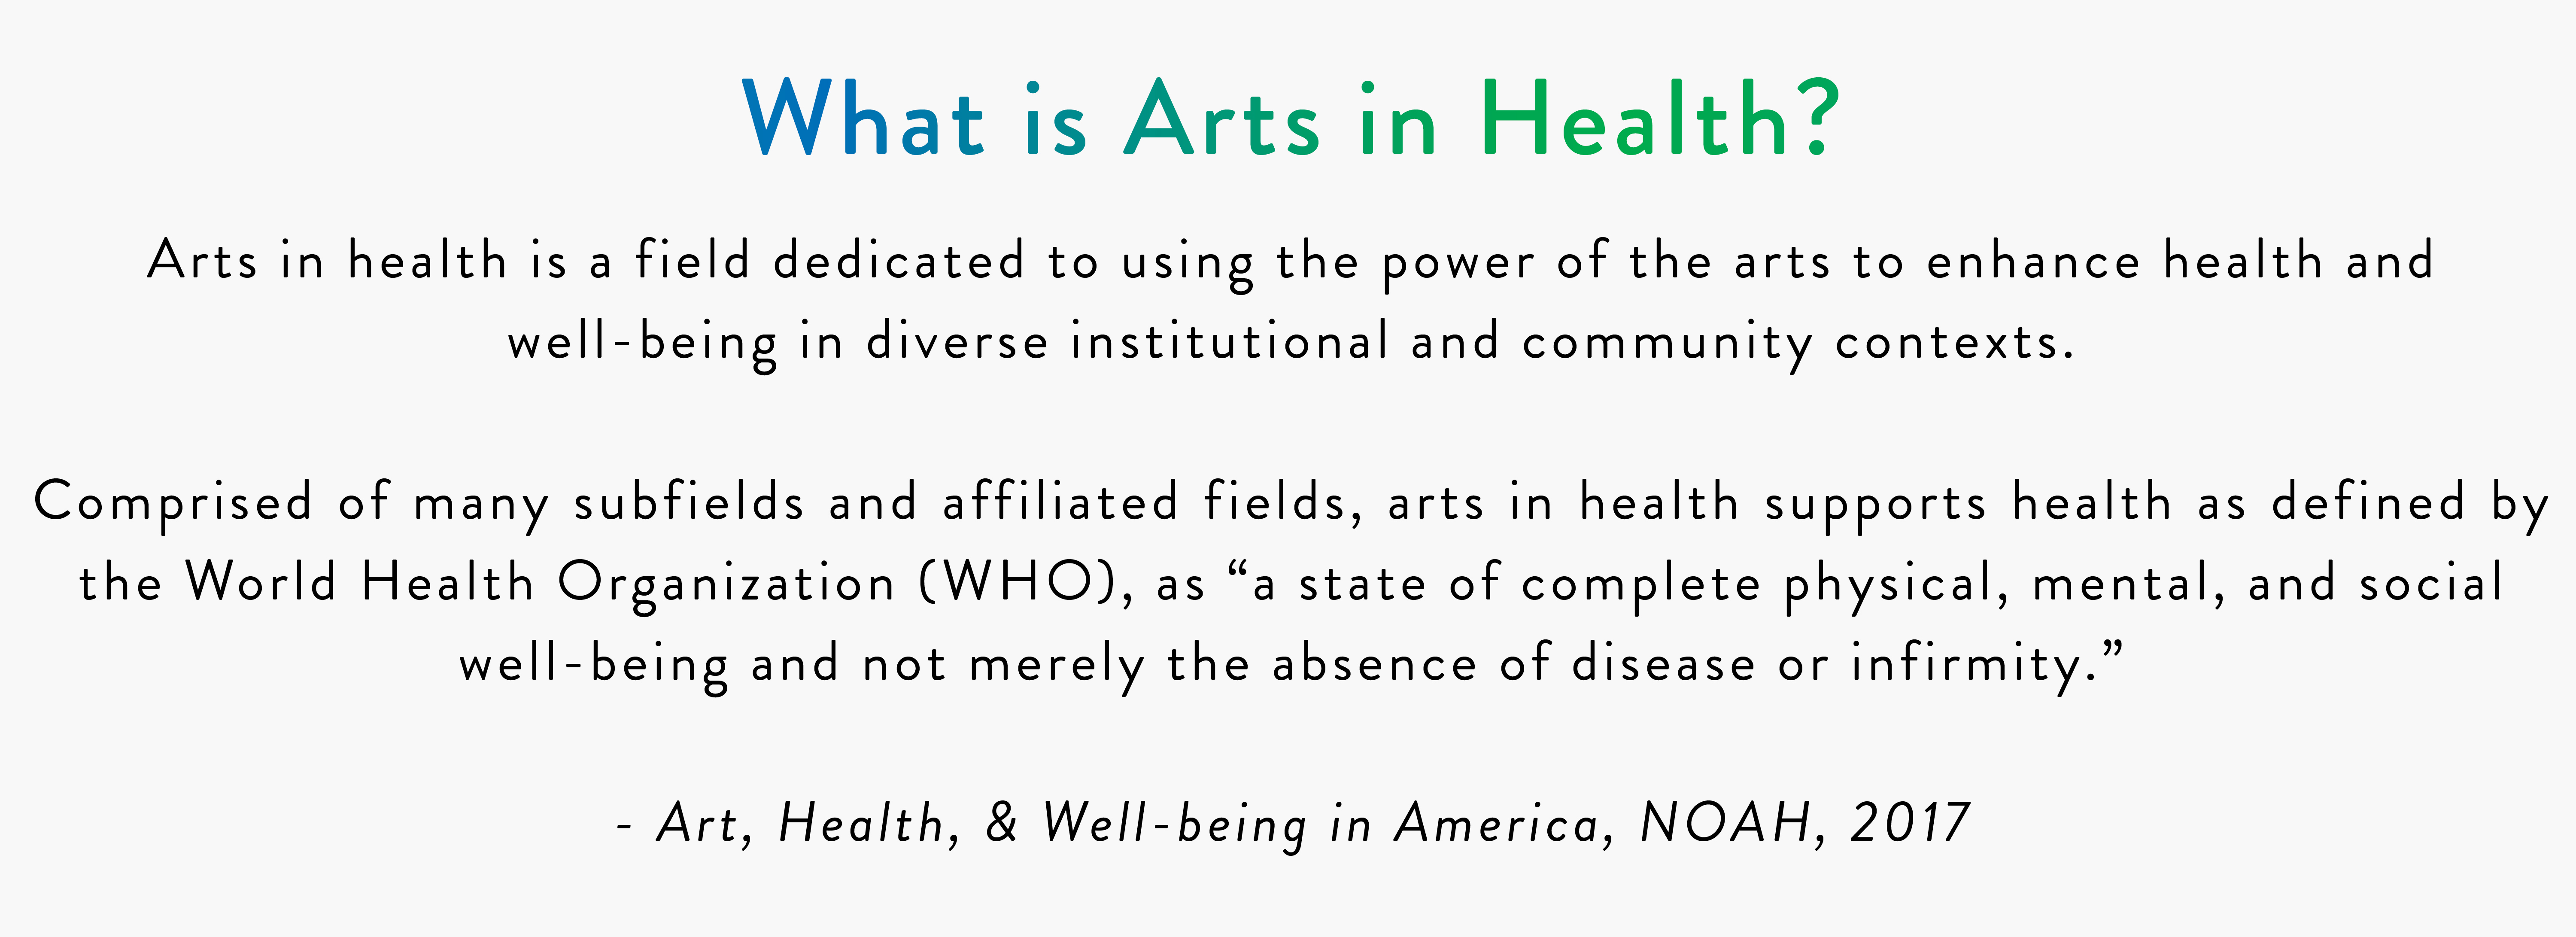 "What is Arts in Health? Arts in health is a field dedicated to using the power of the arts to enhance health and well-being in diverse institutional and community contexts. Comprised of many subfields and affiliated fields, arts in health supports health as defined by the World Health Organization (WHO), as ""a state of complete physical, mental, and social well-being and not merely the absence of disease or infirmity."" - Art, Health, & Well-being in America, NOAH, 2017 The research committee has dedicated its first year to learning from institutions that have made arts in health research a priority. This exploration encouraged us to investigate how research journals, libraries, universities, and hospitals facilitate research information. In addition, we have examined existing databases, how they work, and how they can be most effectively shared with our membership. We are excited to share that research will be a prominent highlight at the 2018 NOAH Conference. One of the leading researchers in our field, Daisy Fancourt, will be delivering the keynote. In addition, we will hear from a comprehensive interagency arts in health initiative in Rhode Island which has brought together representatives from their state health agencies, universities, and arts council to address the impact of the arts on statewide health priorities. We will also hear from Dr. Francois Bethoux, the Medical Director of the Cleveland Clinic Arts and Medicine Institute. Dr. Bethoux will provide an introduction on how to utilize, interpret and conduct research as well as identify where gaps in research exist in our field. The research committee is committed to advocating the importance of research in our field and providing access to tools and resources that serve our field. Our current initiatives include providing journal access to members, building connections with leading organizations dedicated to advancing the field of research, and developing a web presence that is recognized as a comprehensive resource to our members and to the field."